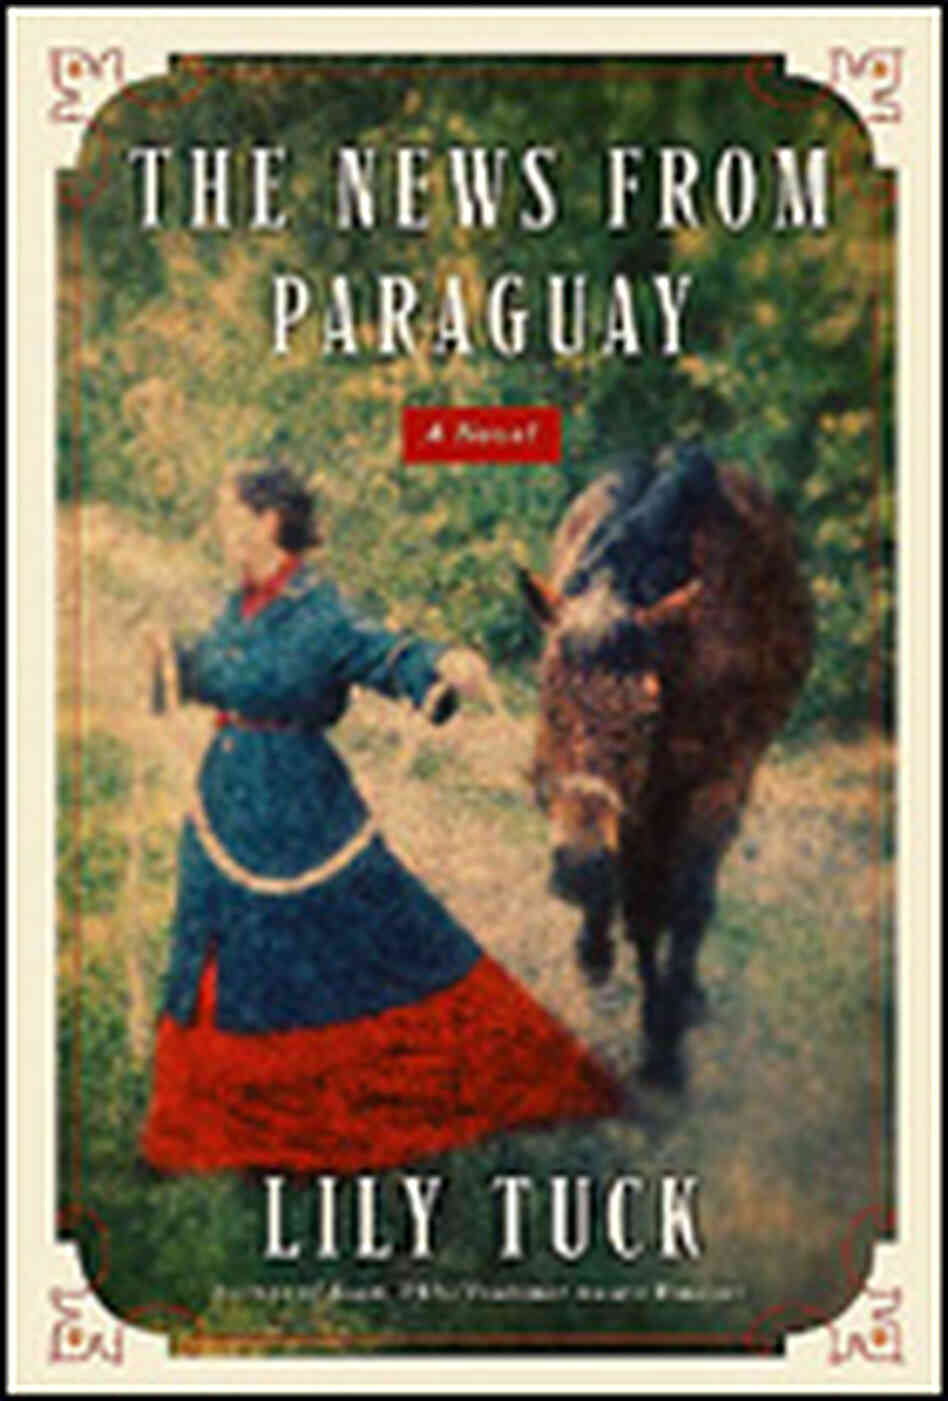 'The News from Paraguay' by Lily Tuck